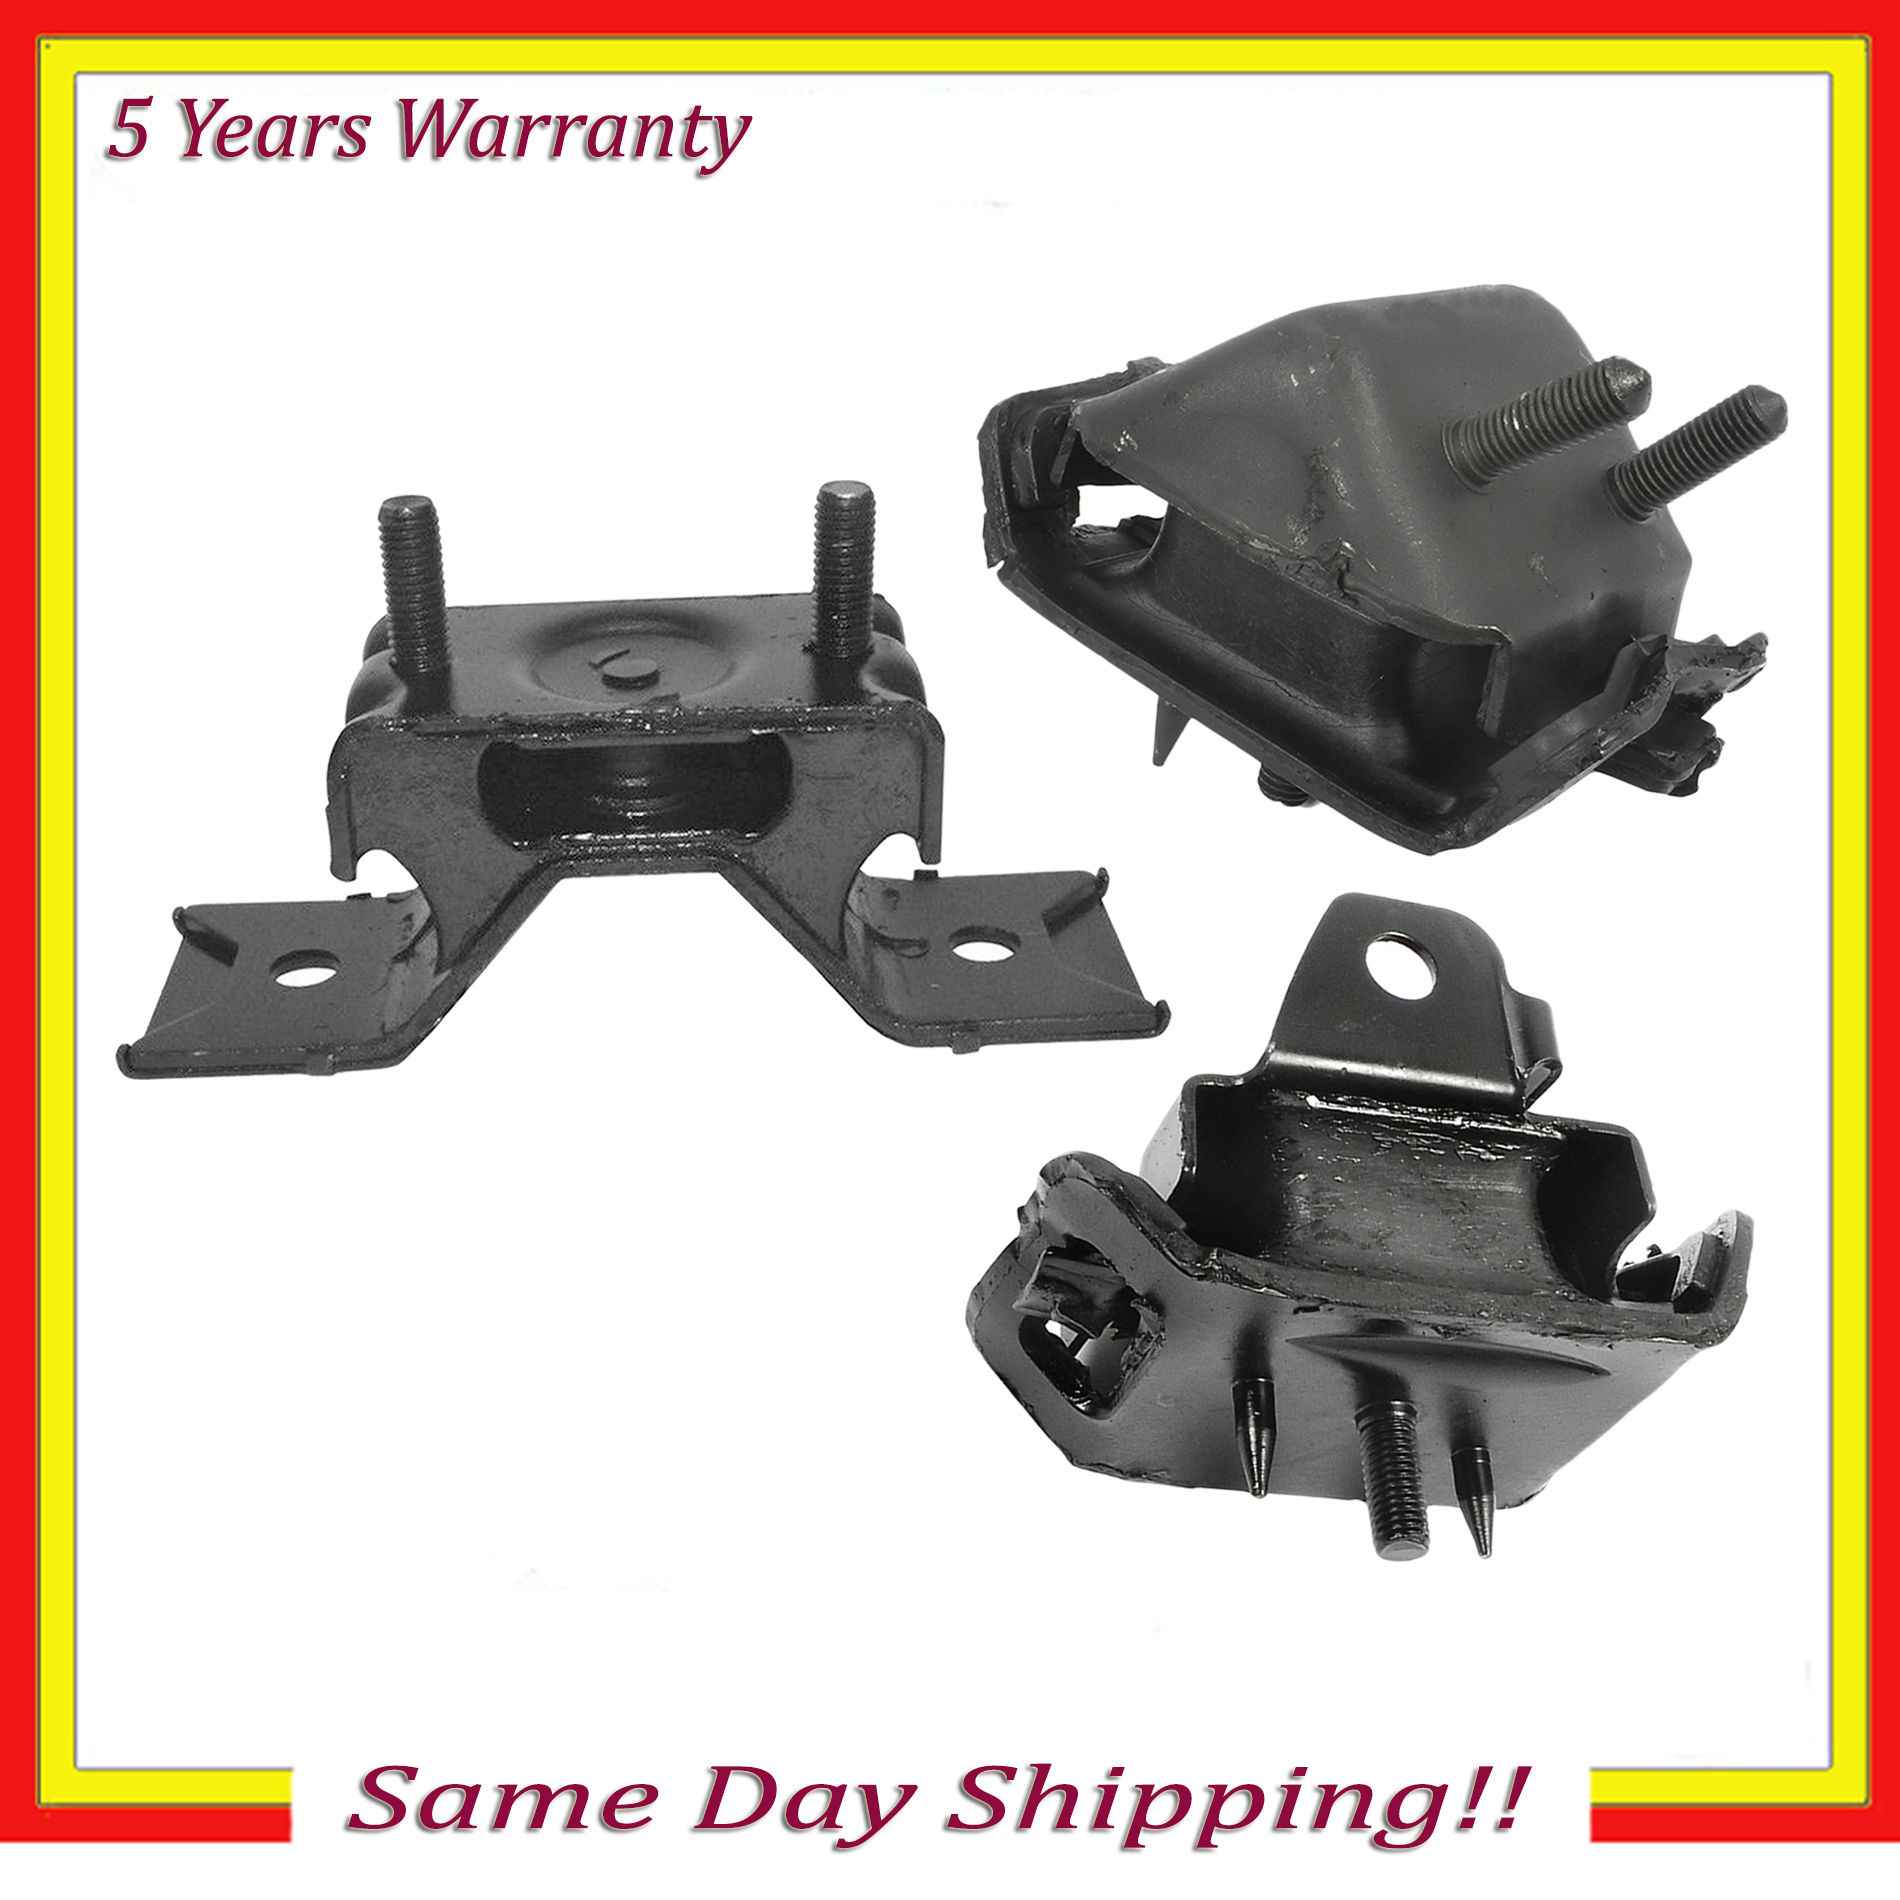 Trans Mount For 5298 02-05 Mercury Mountaineer Ford Explorer 4.0L 4.6L Auto